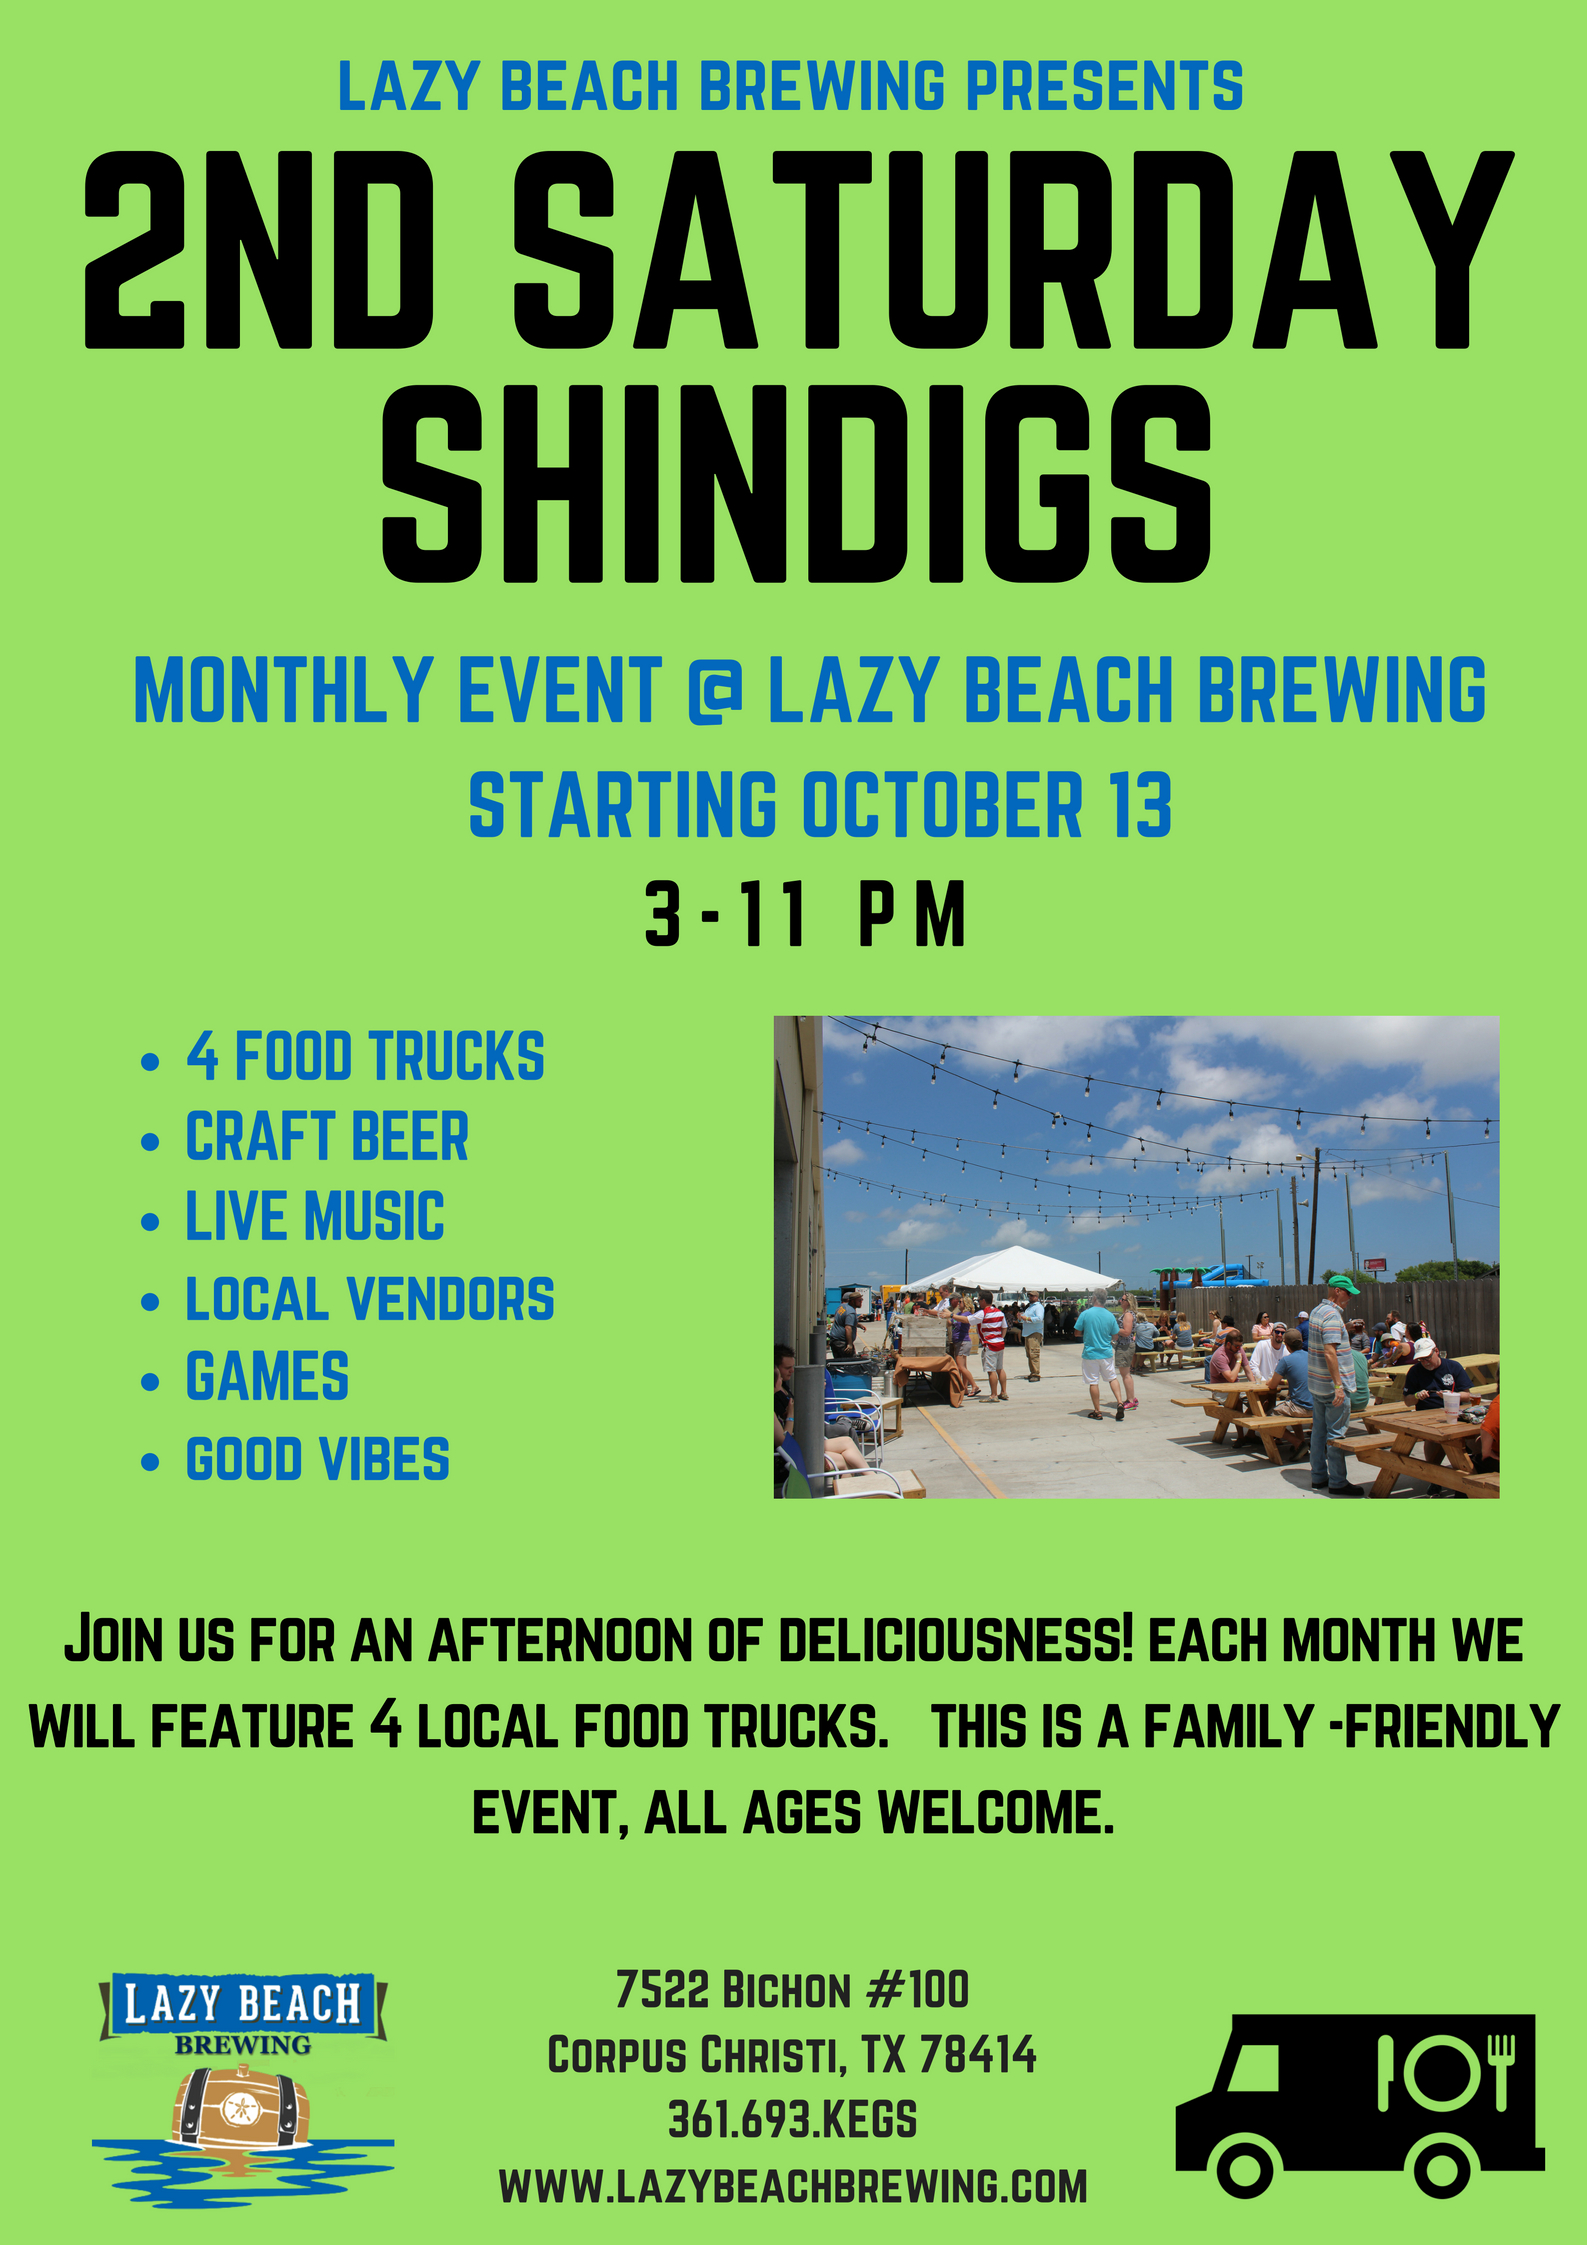 2nd Saturday Shindig!